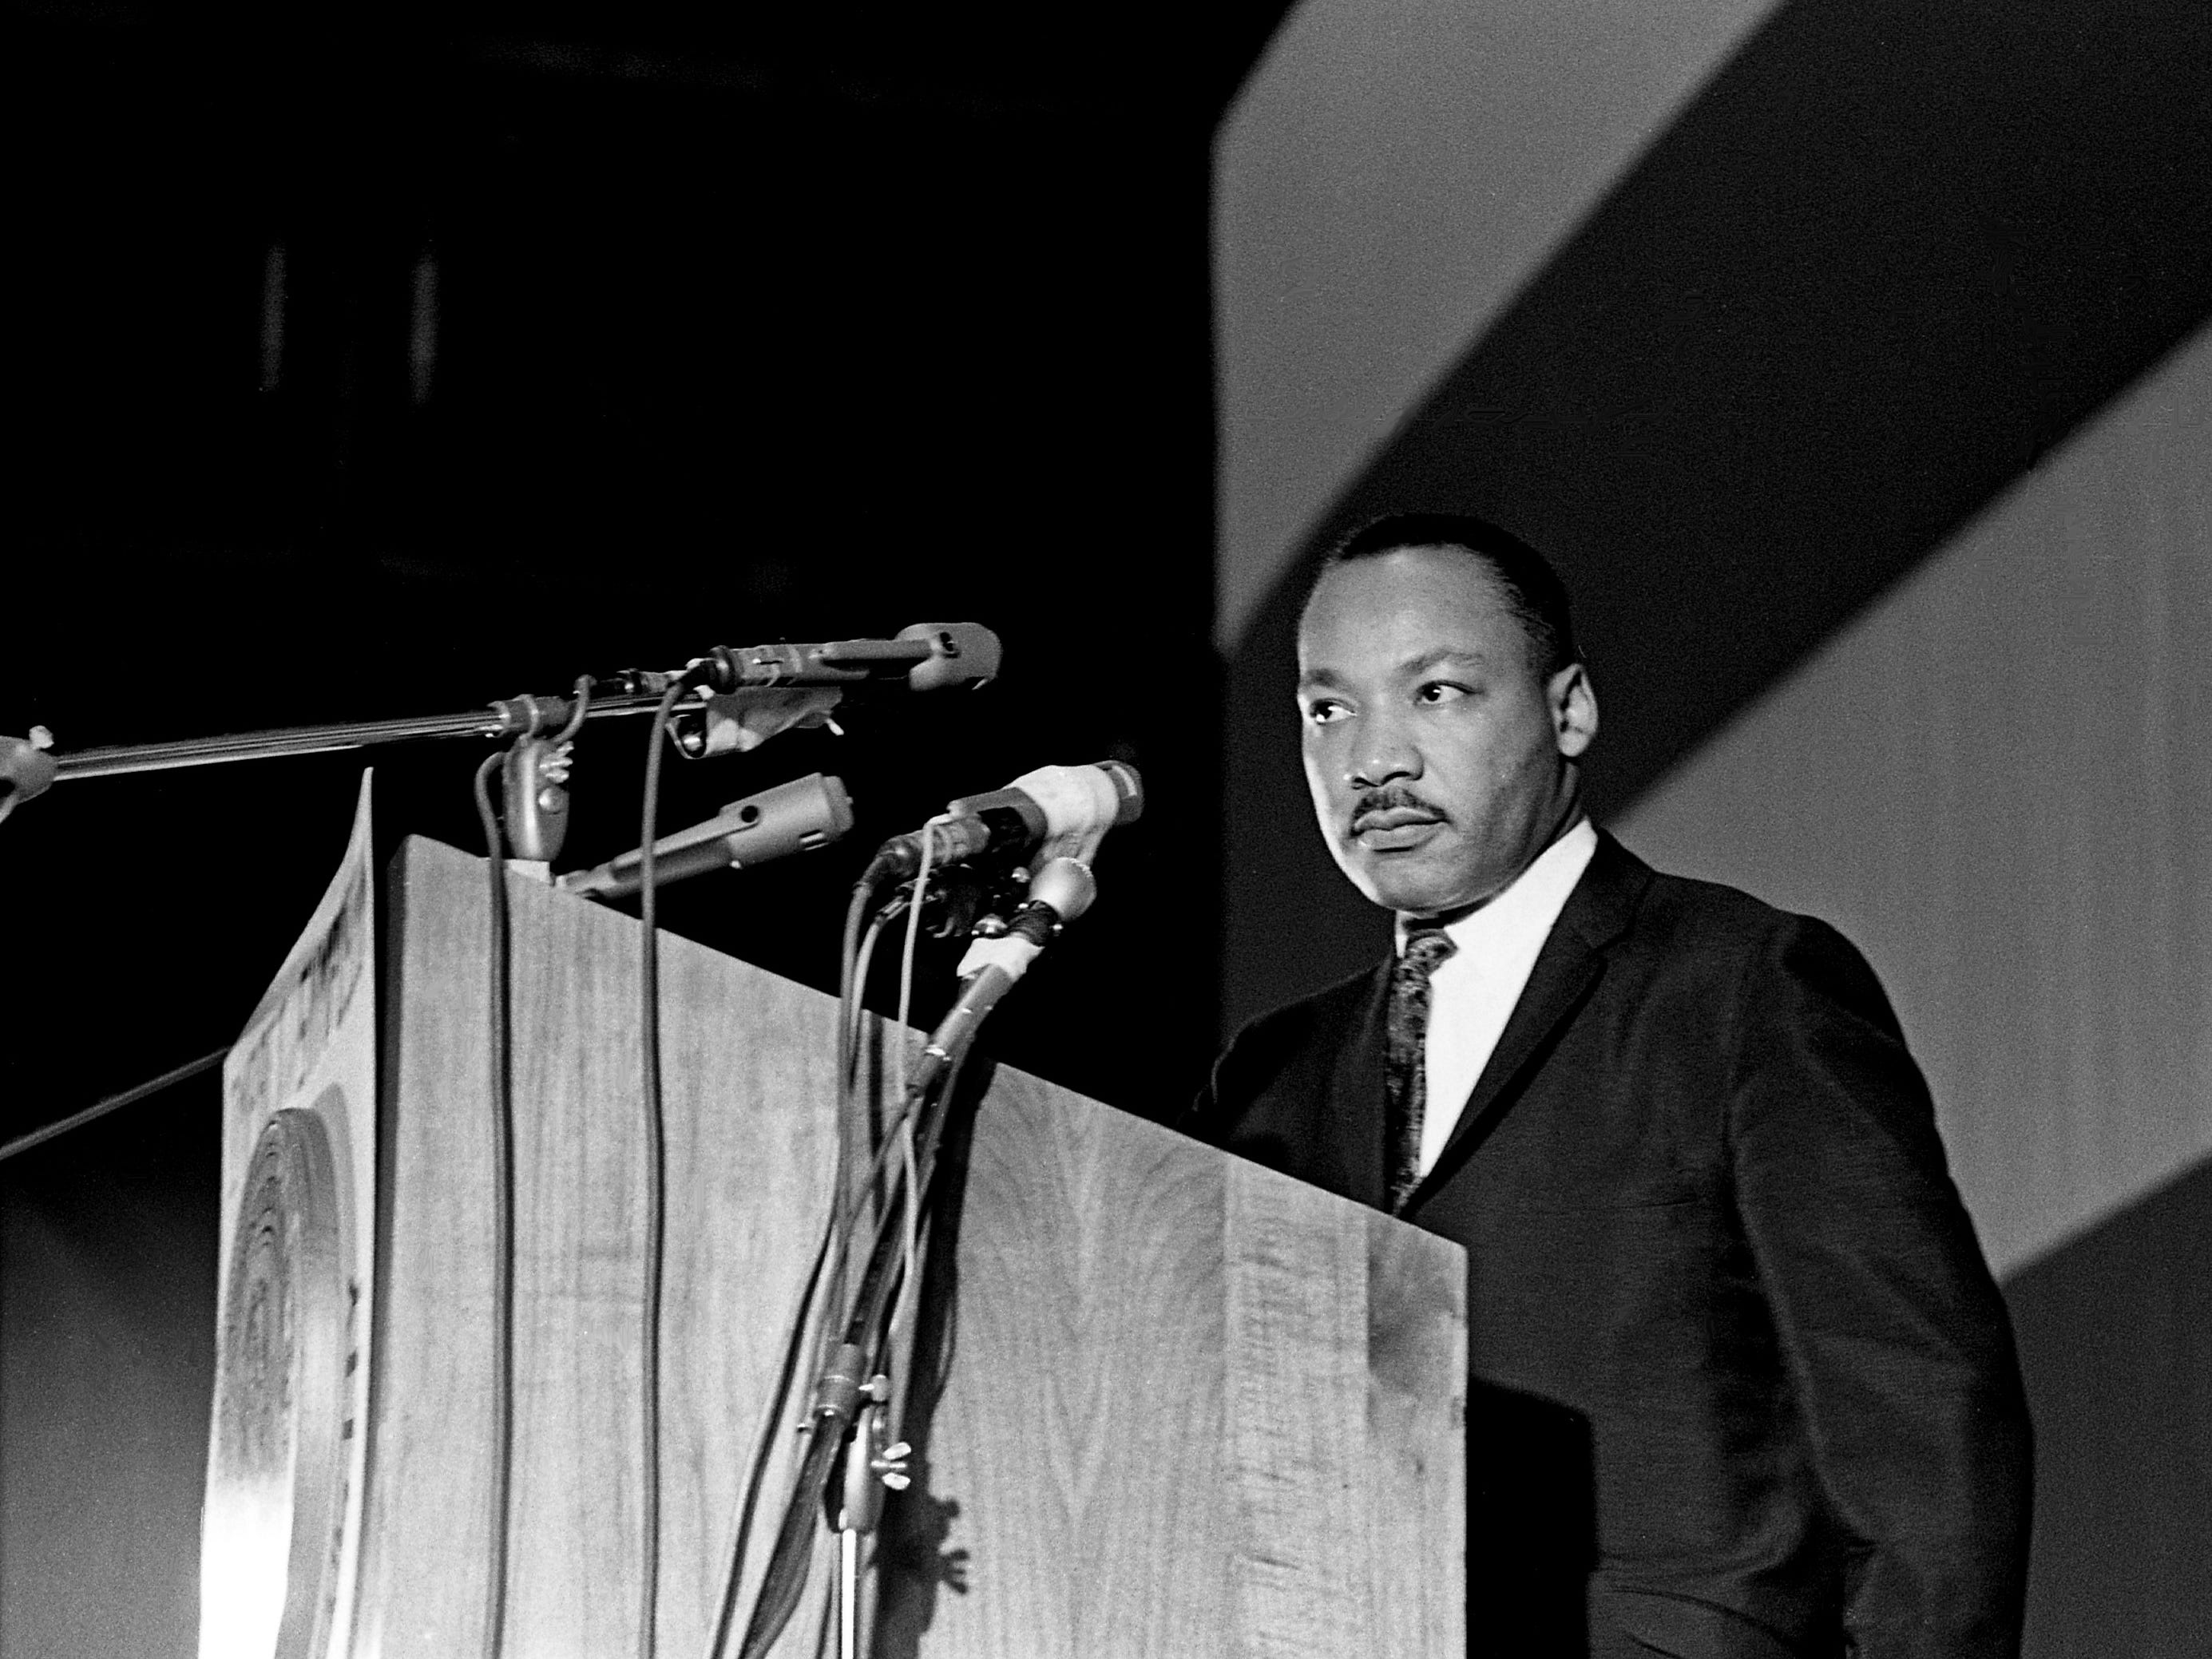 Goodlettsville celebrates MLK Day with brunch, 'I Have a Dream' speech